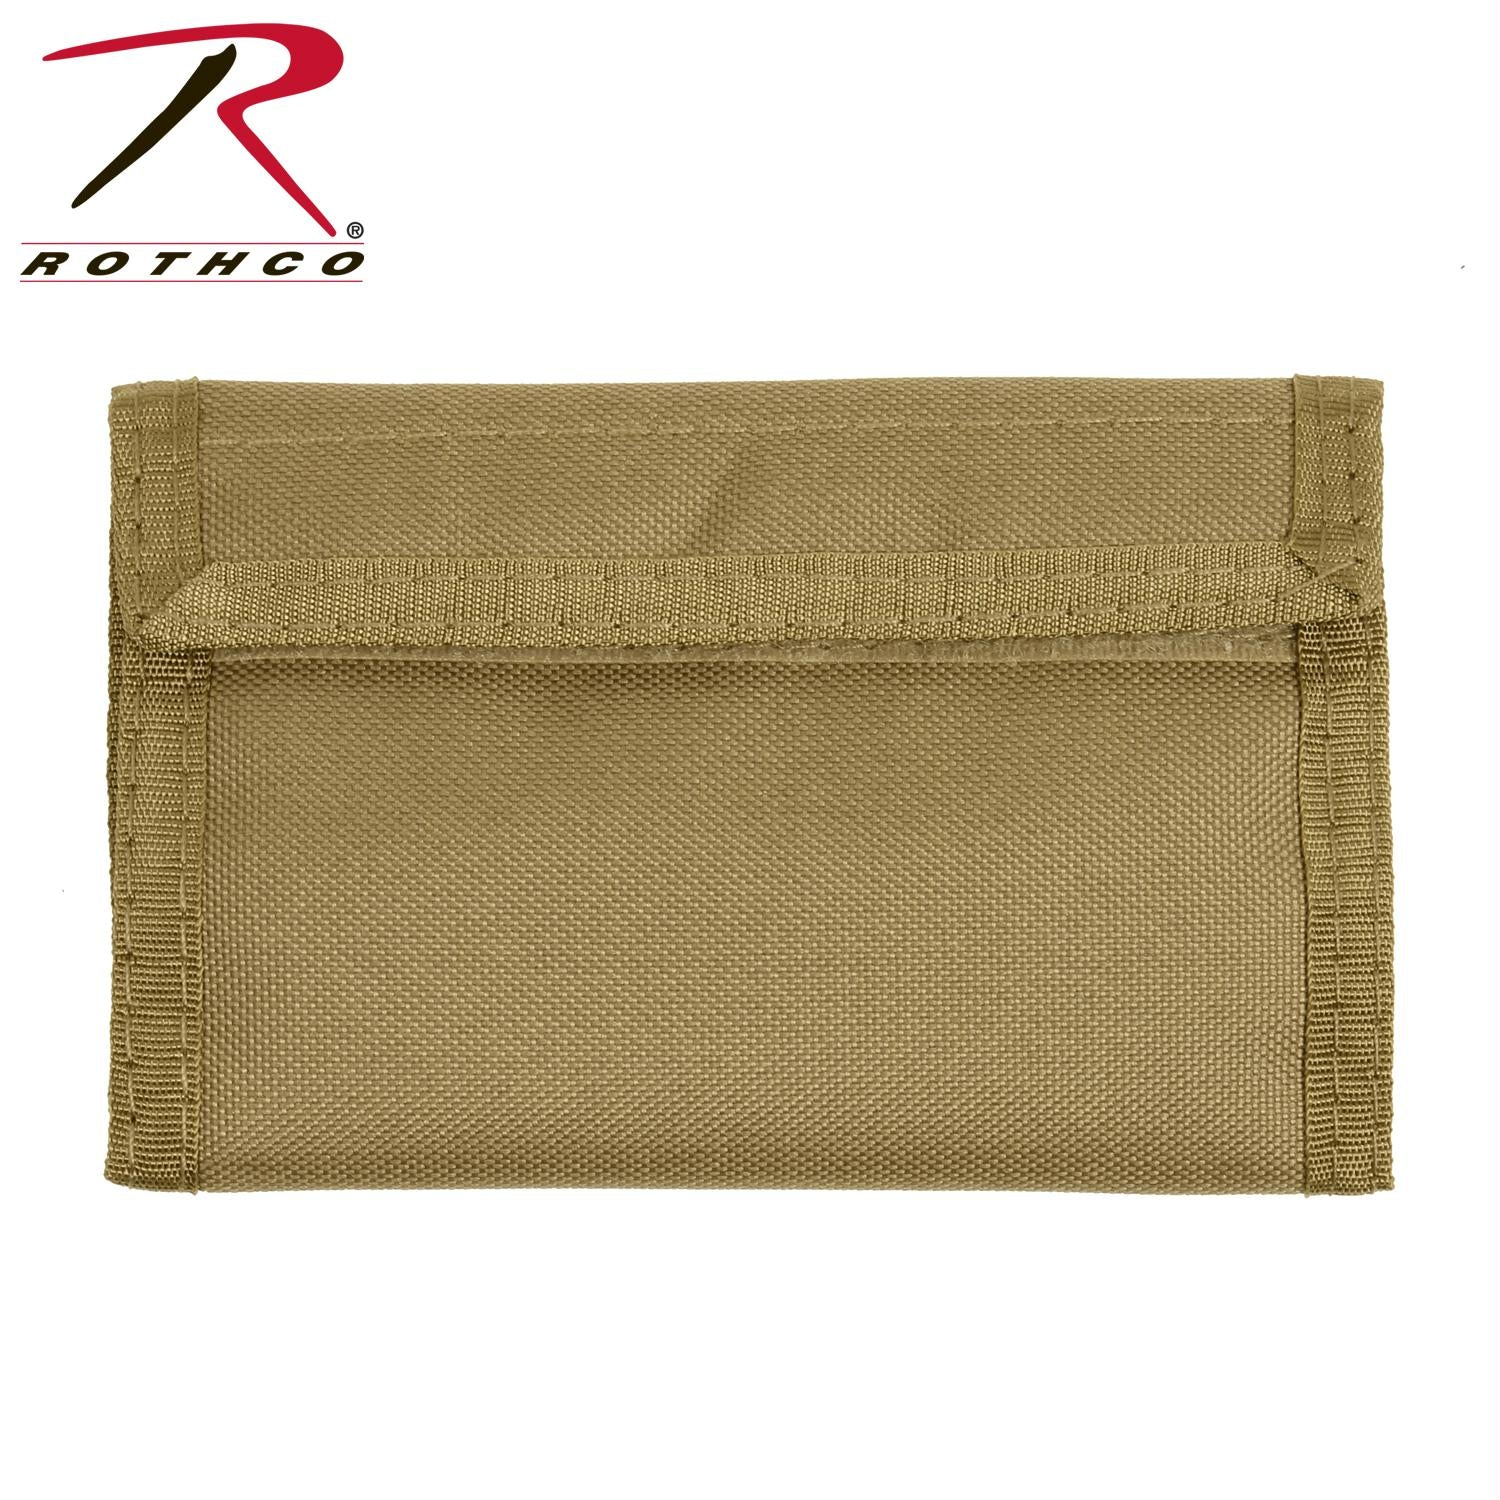 Rothco Commando Wallet - Coyote Brown